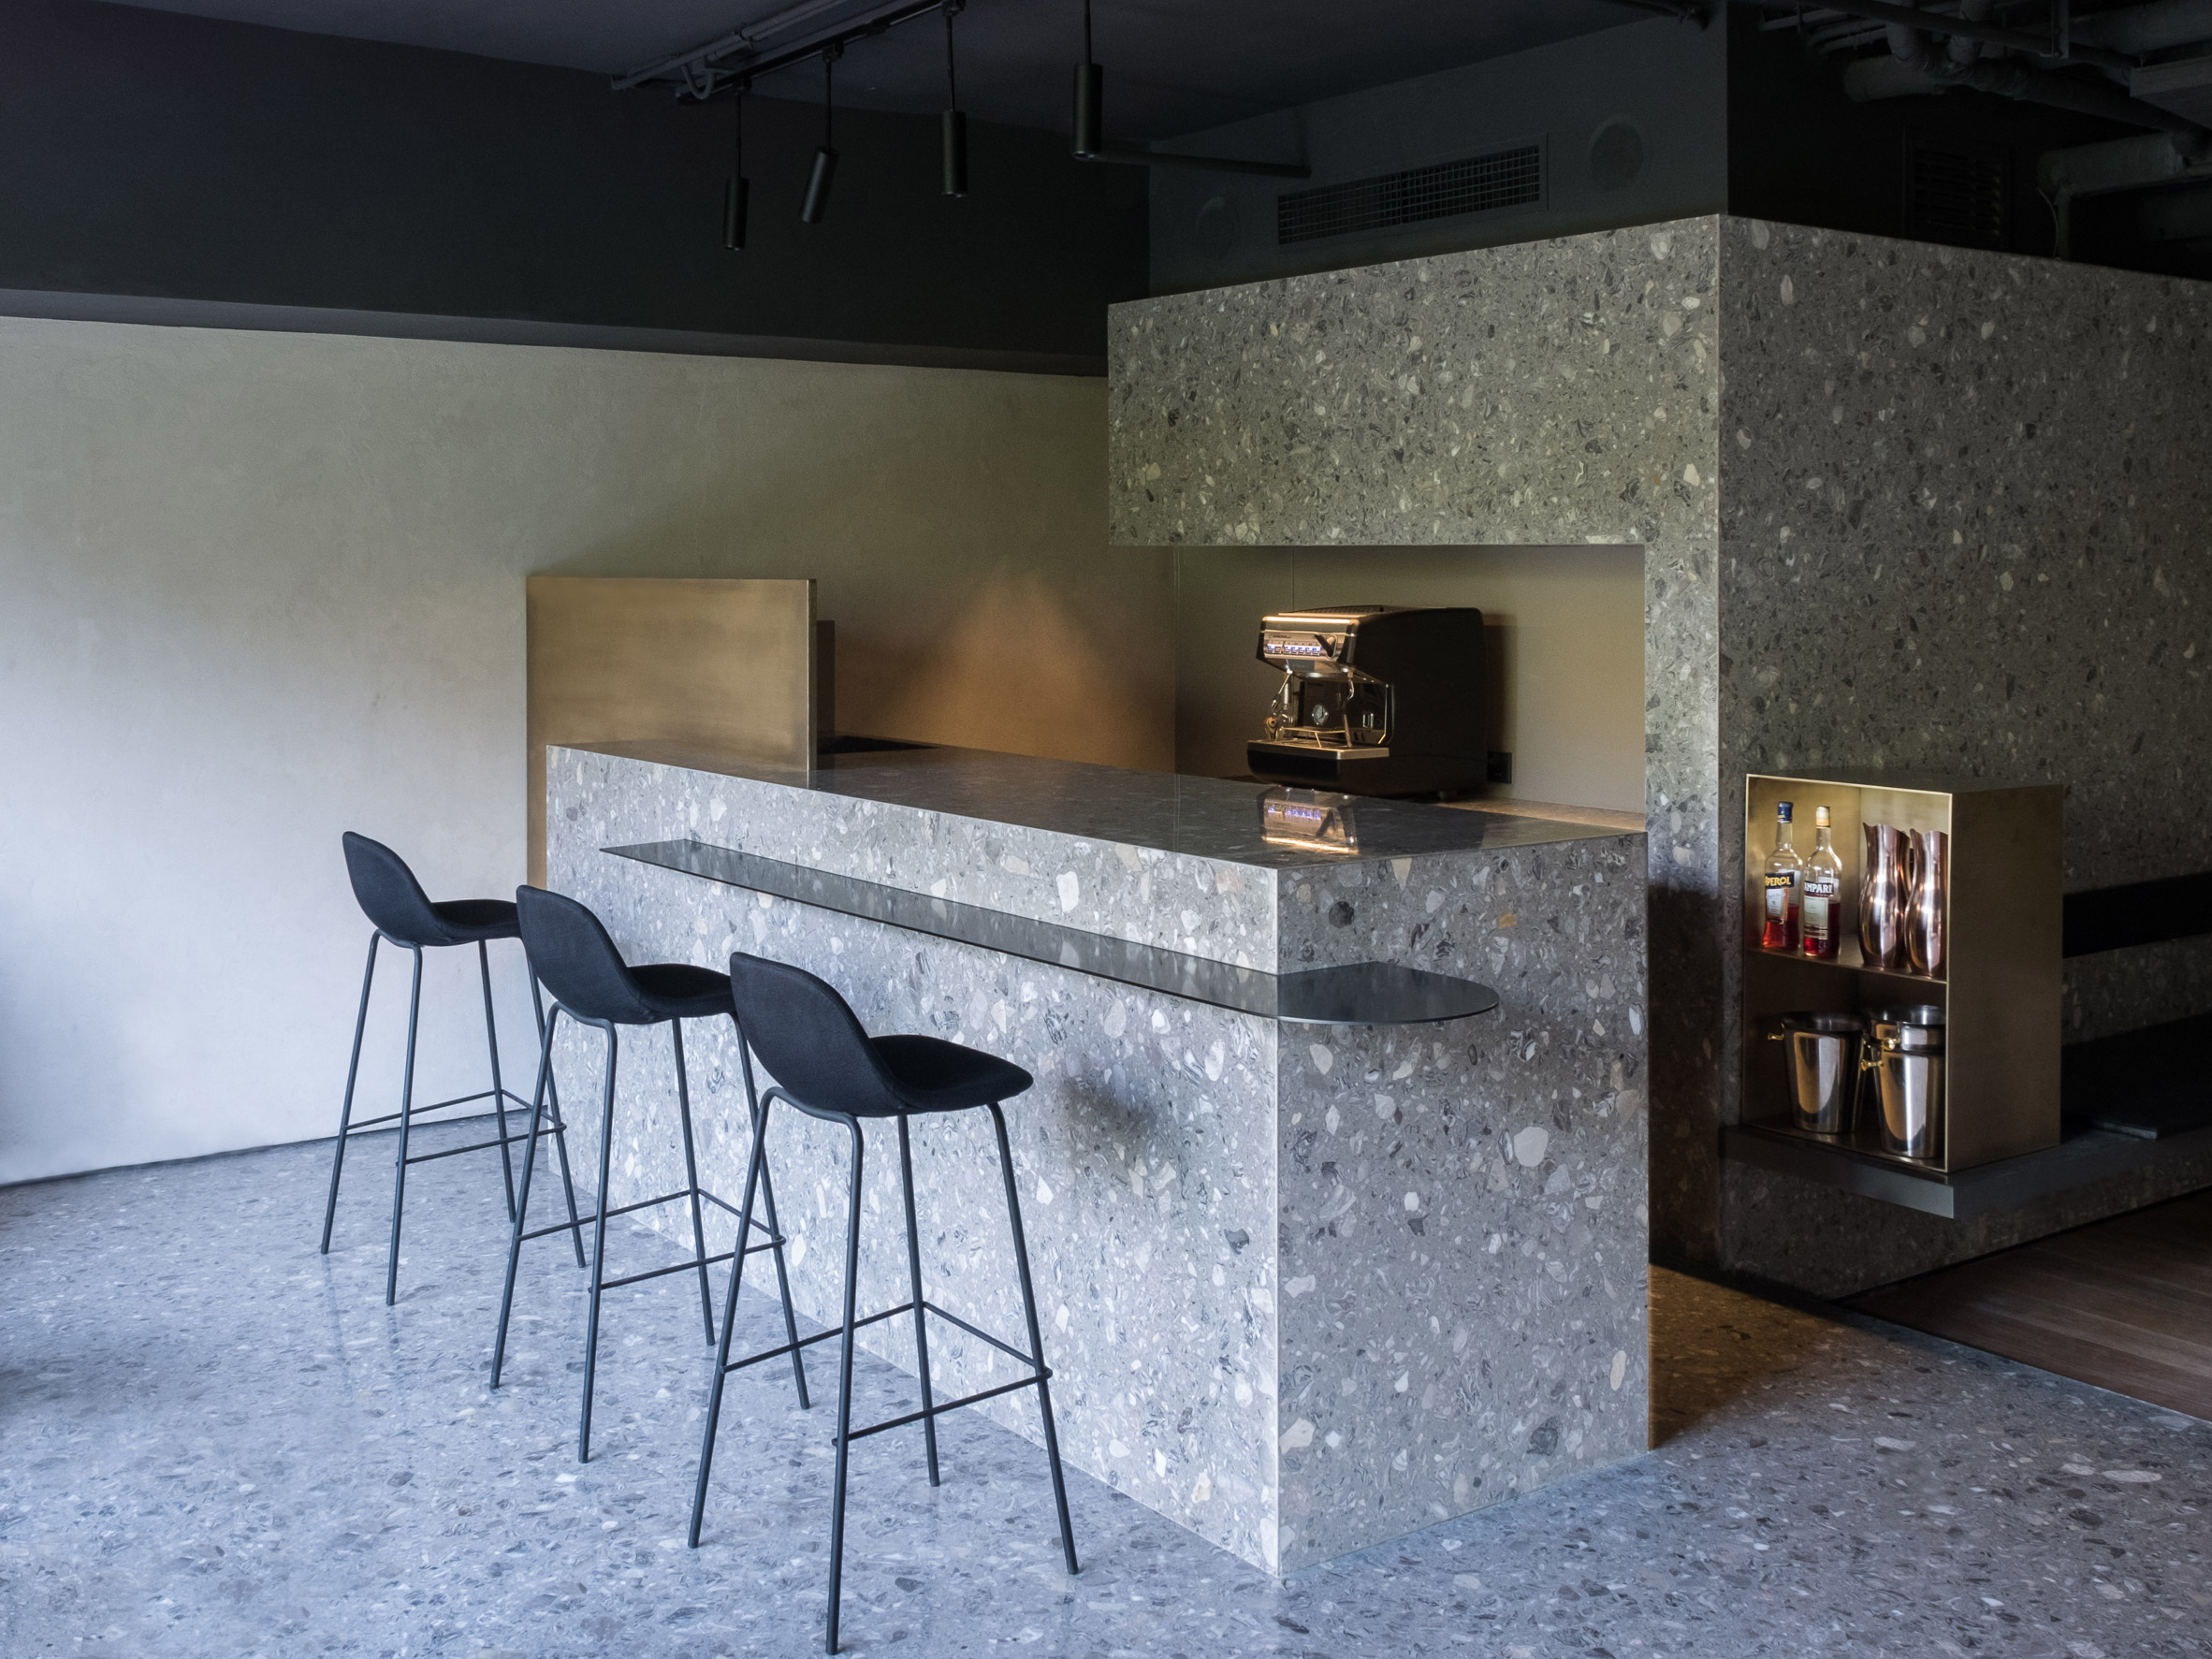 lievito-mddm-studio-interiors-restaurants-beijing-china_dezeen_2364_col_3